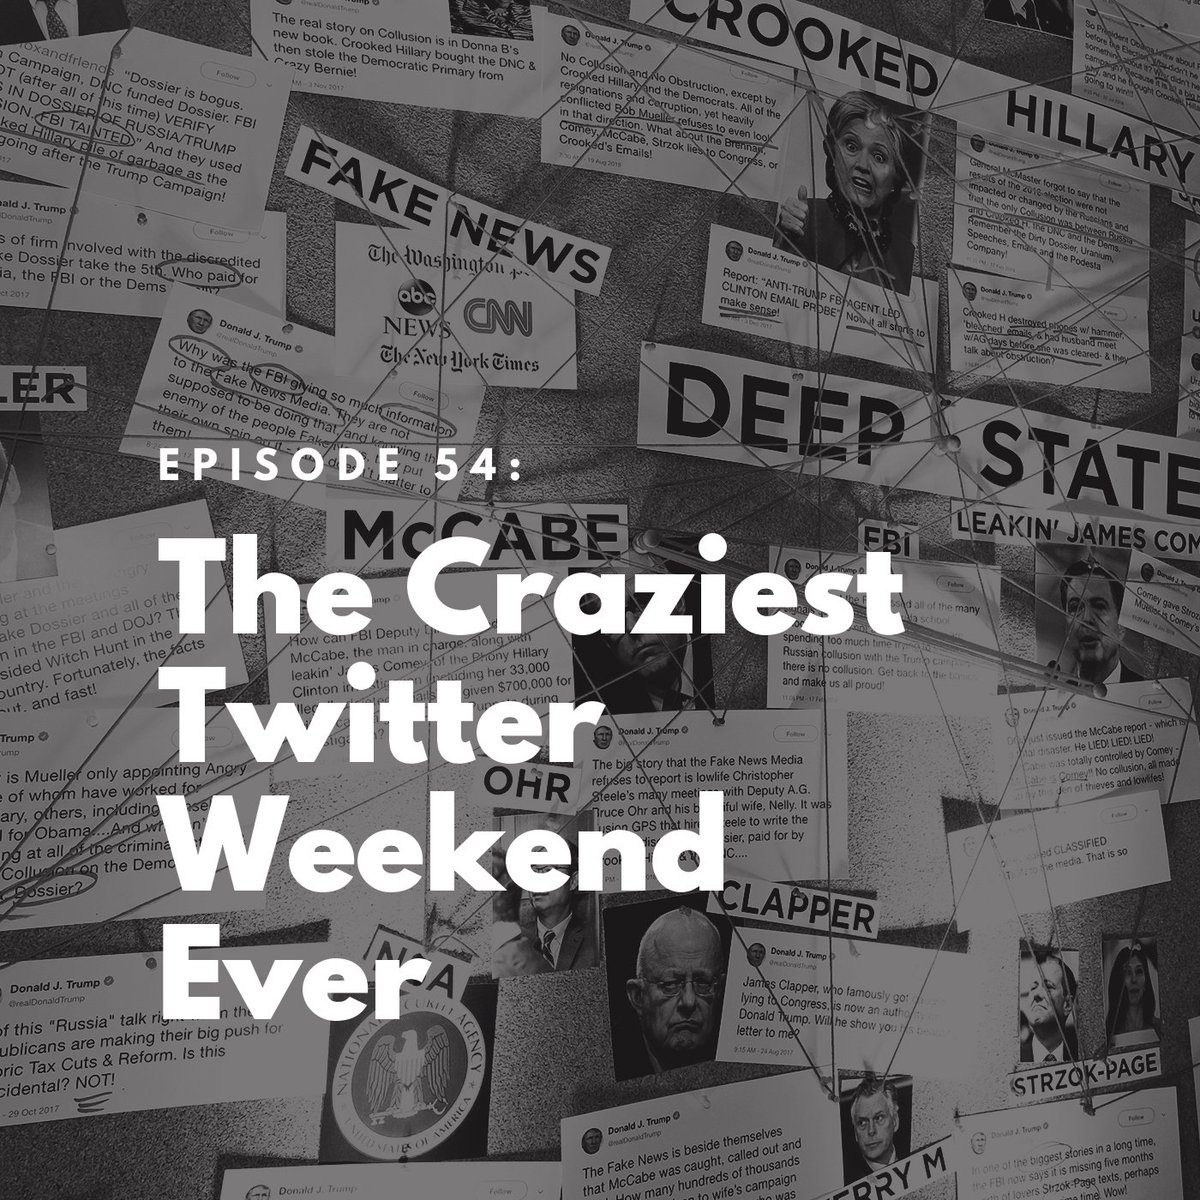 On today's @BulwarkOnline podcast, @BillKristol joins @SykesCharlie to discuss the craziest twitter weekend ever.   https://podcast.thebulwark.com/the-craziest-twitter-weekend-ever…